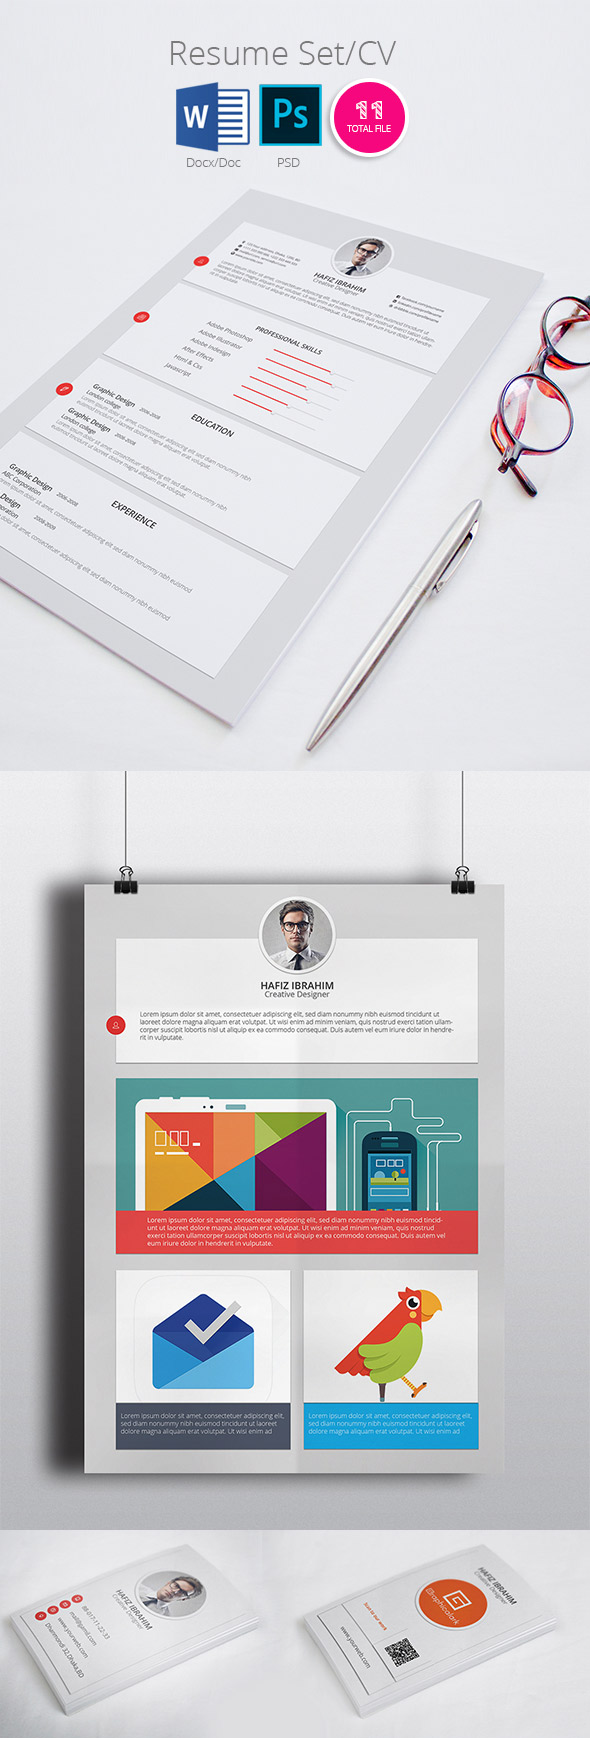 Modern Resume CV Template Design